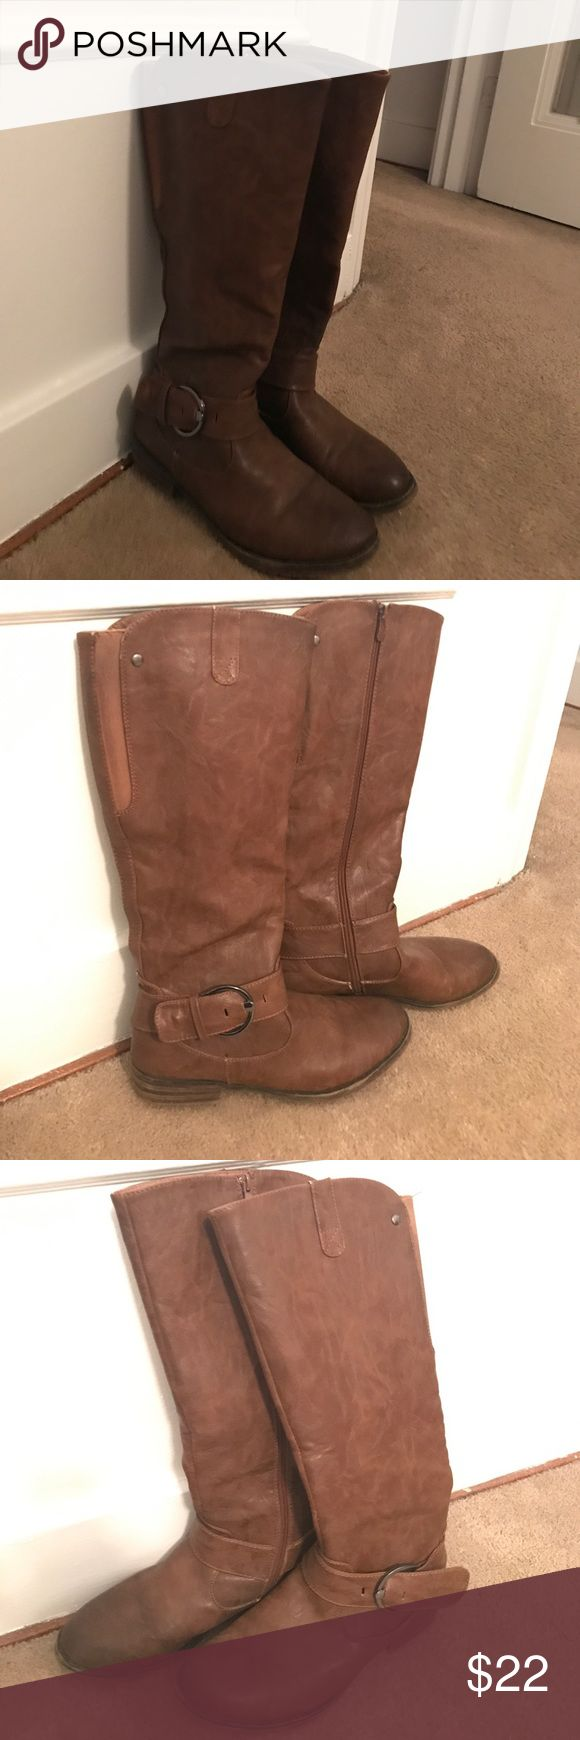 Tall brown boots These have some give in the back so they are perfect for both wide and skinny calf! These have been worn only a few times! There is a leather strap that is missing in the 3rd picture, otherwise near perfect condition!! No reasonable offer will be refused! Patrizia Pepe Shoes Winter & Rain Boots